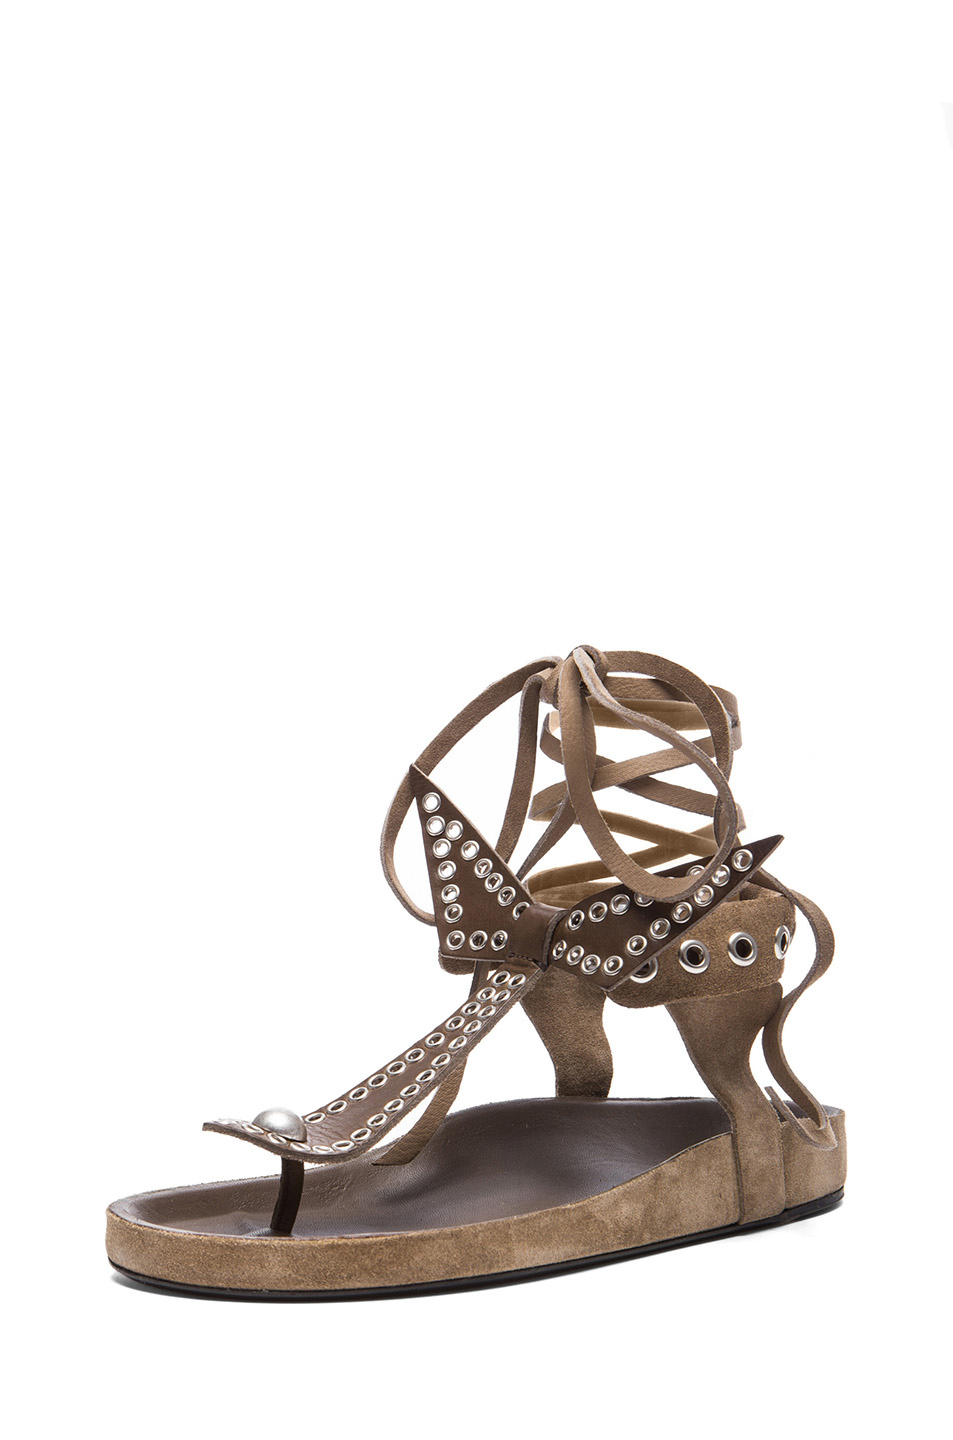 Isabel Marant | Edris Calfskin Velvet Leather Sandals in Khaki